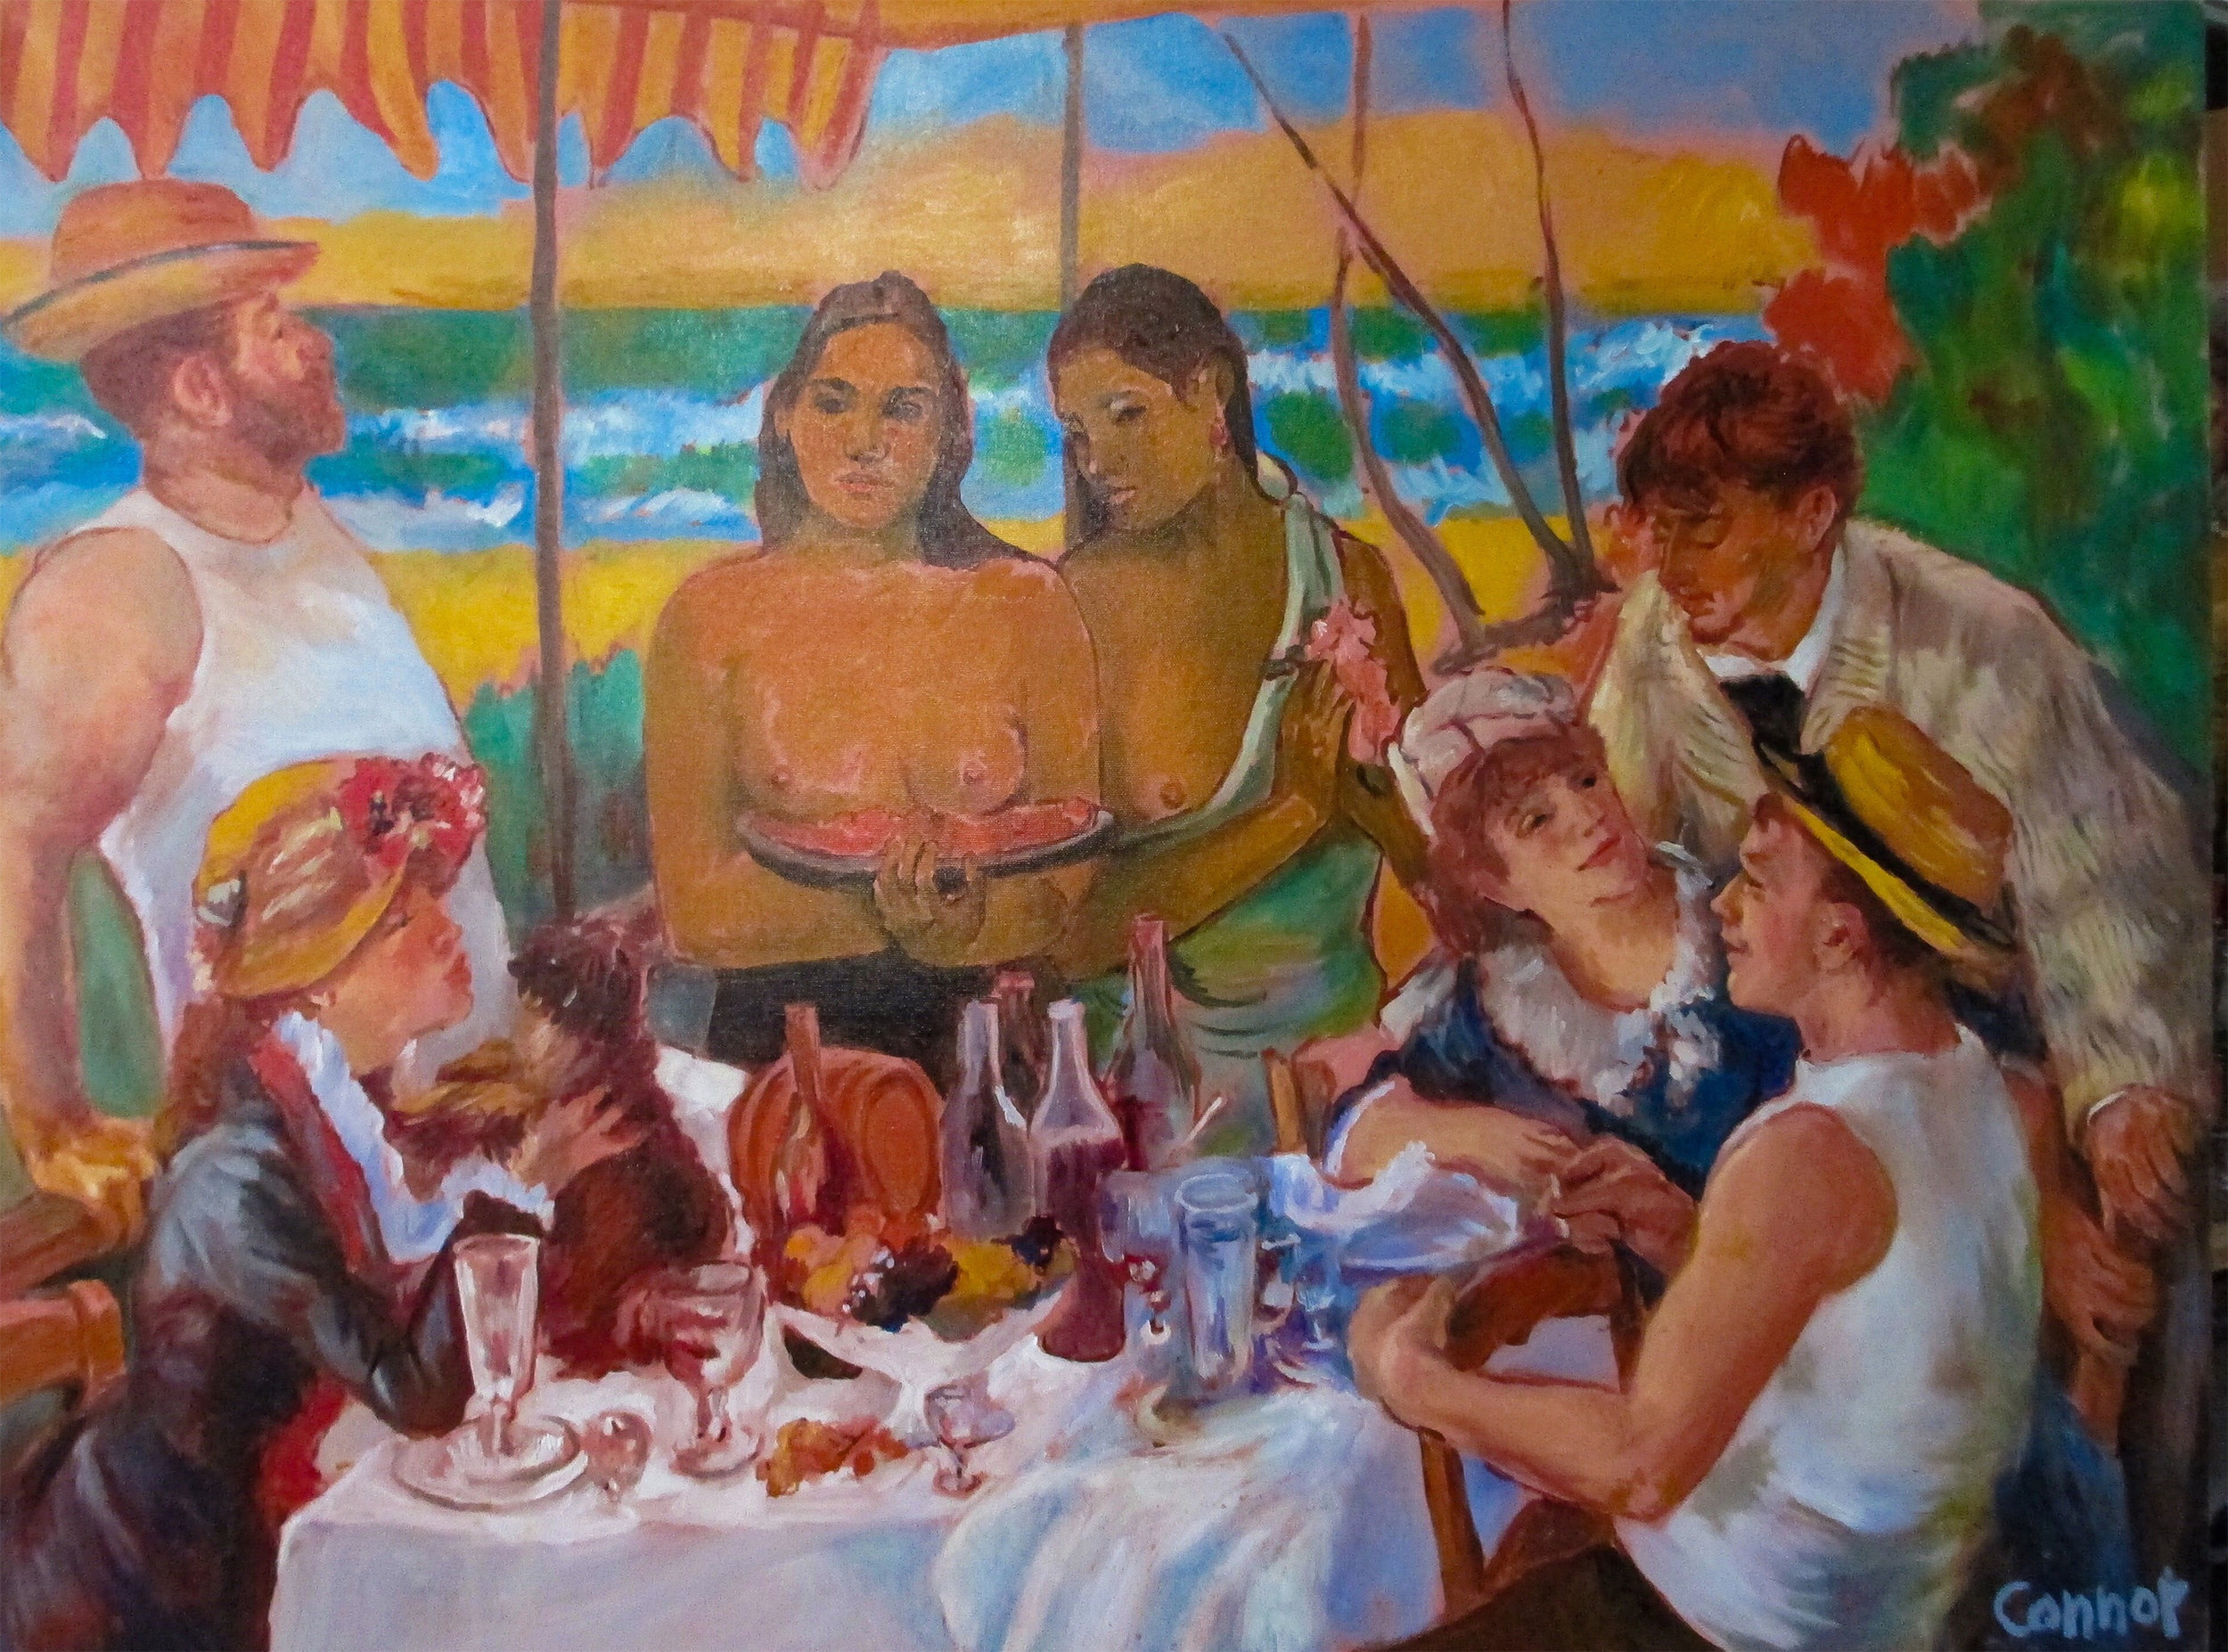 Club Tahiti (after Gauguin, Renoir)   Oil on canvas  30 x 40 inches